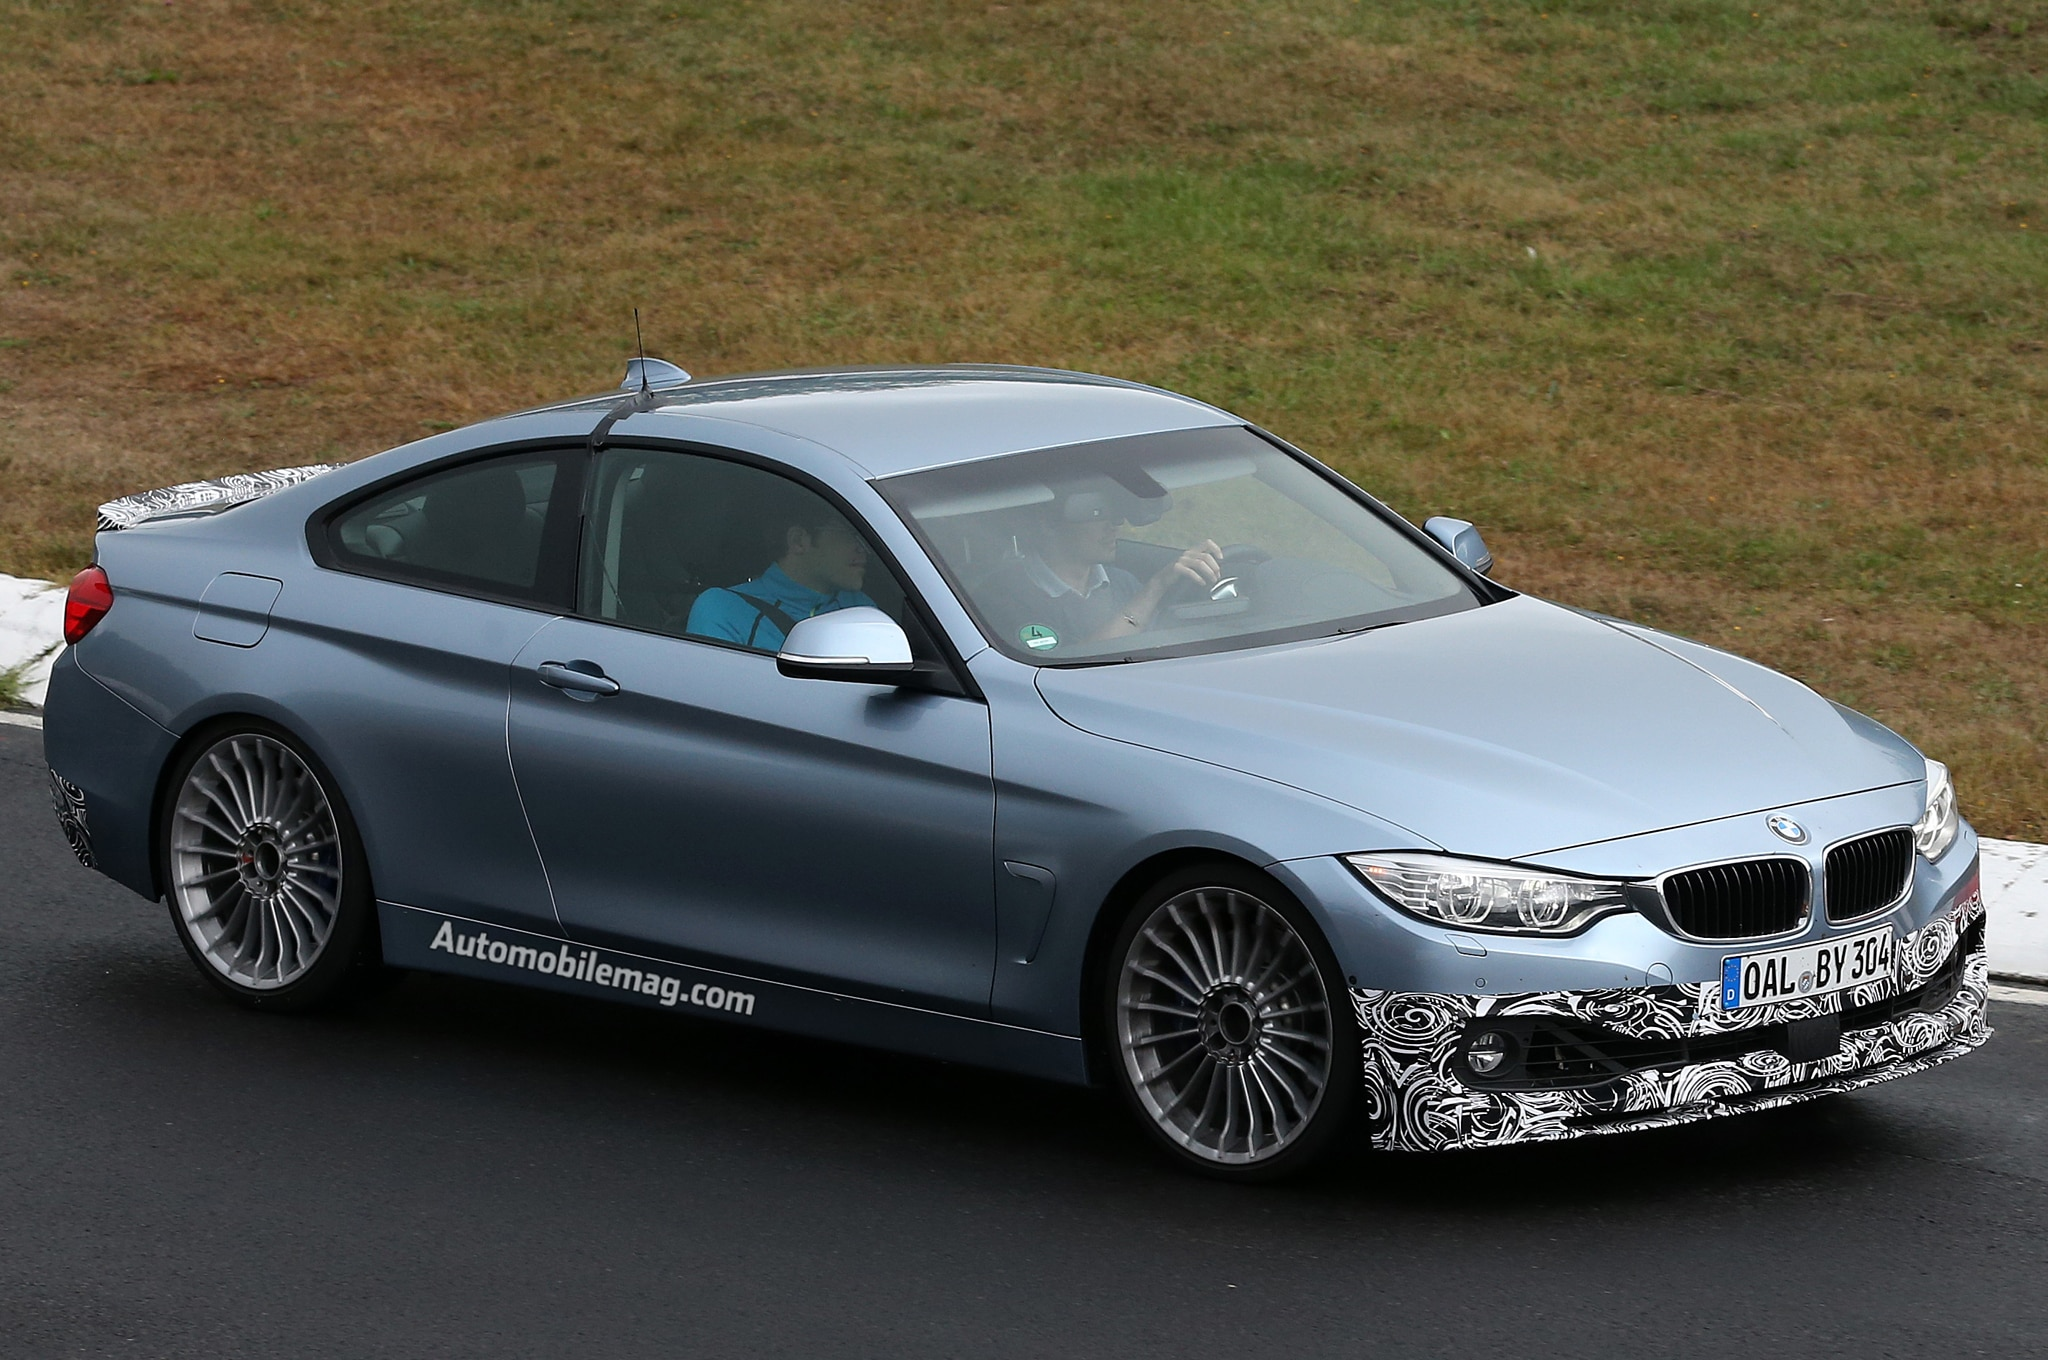 2014 Bmw Alpina B4 Coupe Right Front Side1